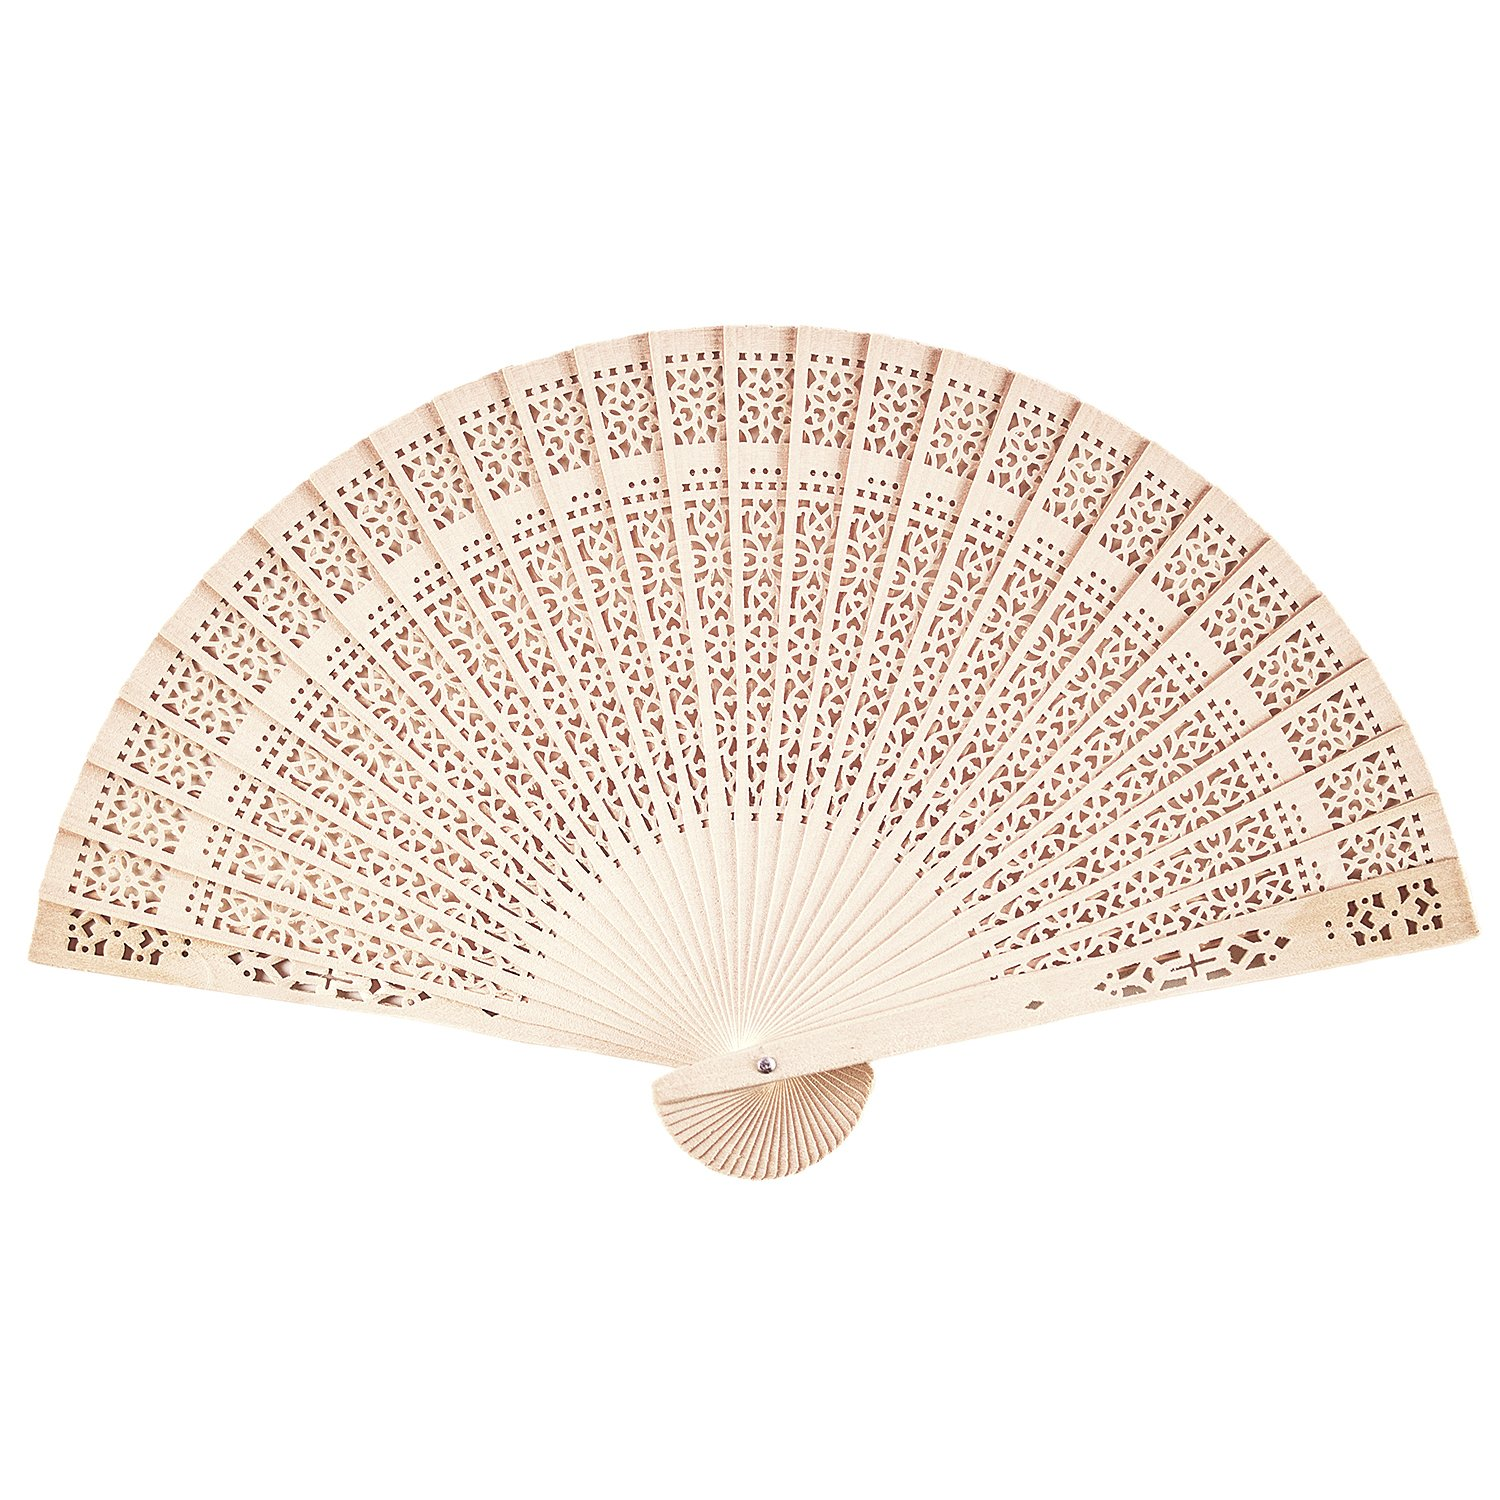 Super Z Outlet Chinese Sandalwood Scented Wooden Openwork Personal Hand Held Folding Fans for Wedding Decoration, Birthdays, Home Gifts (48 Pack) by Super Z Outlet